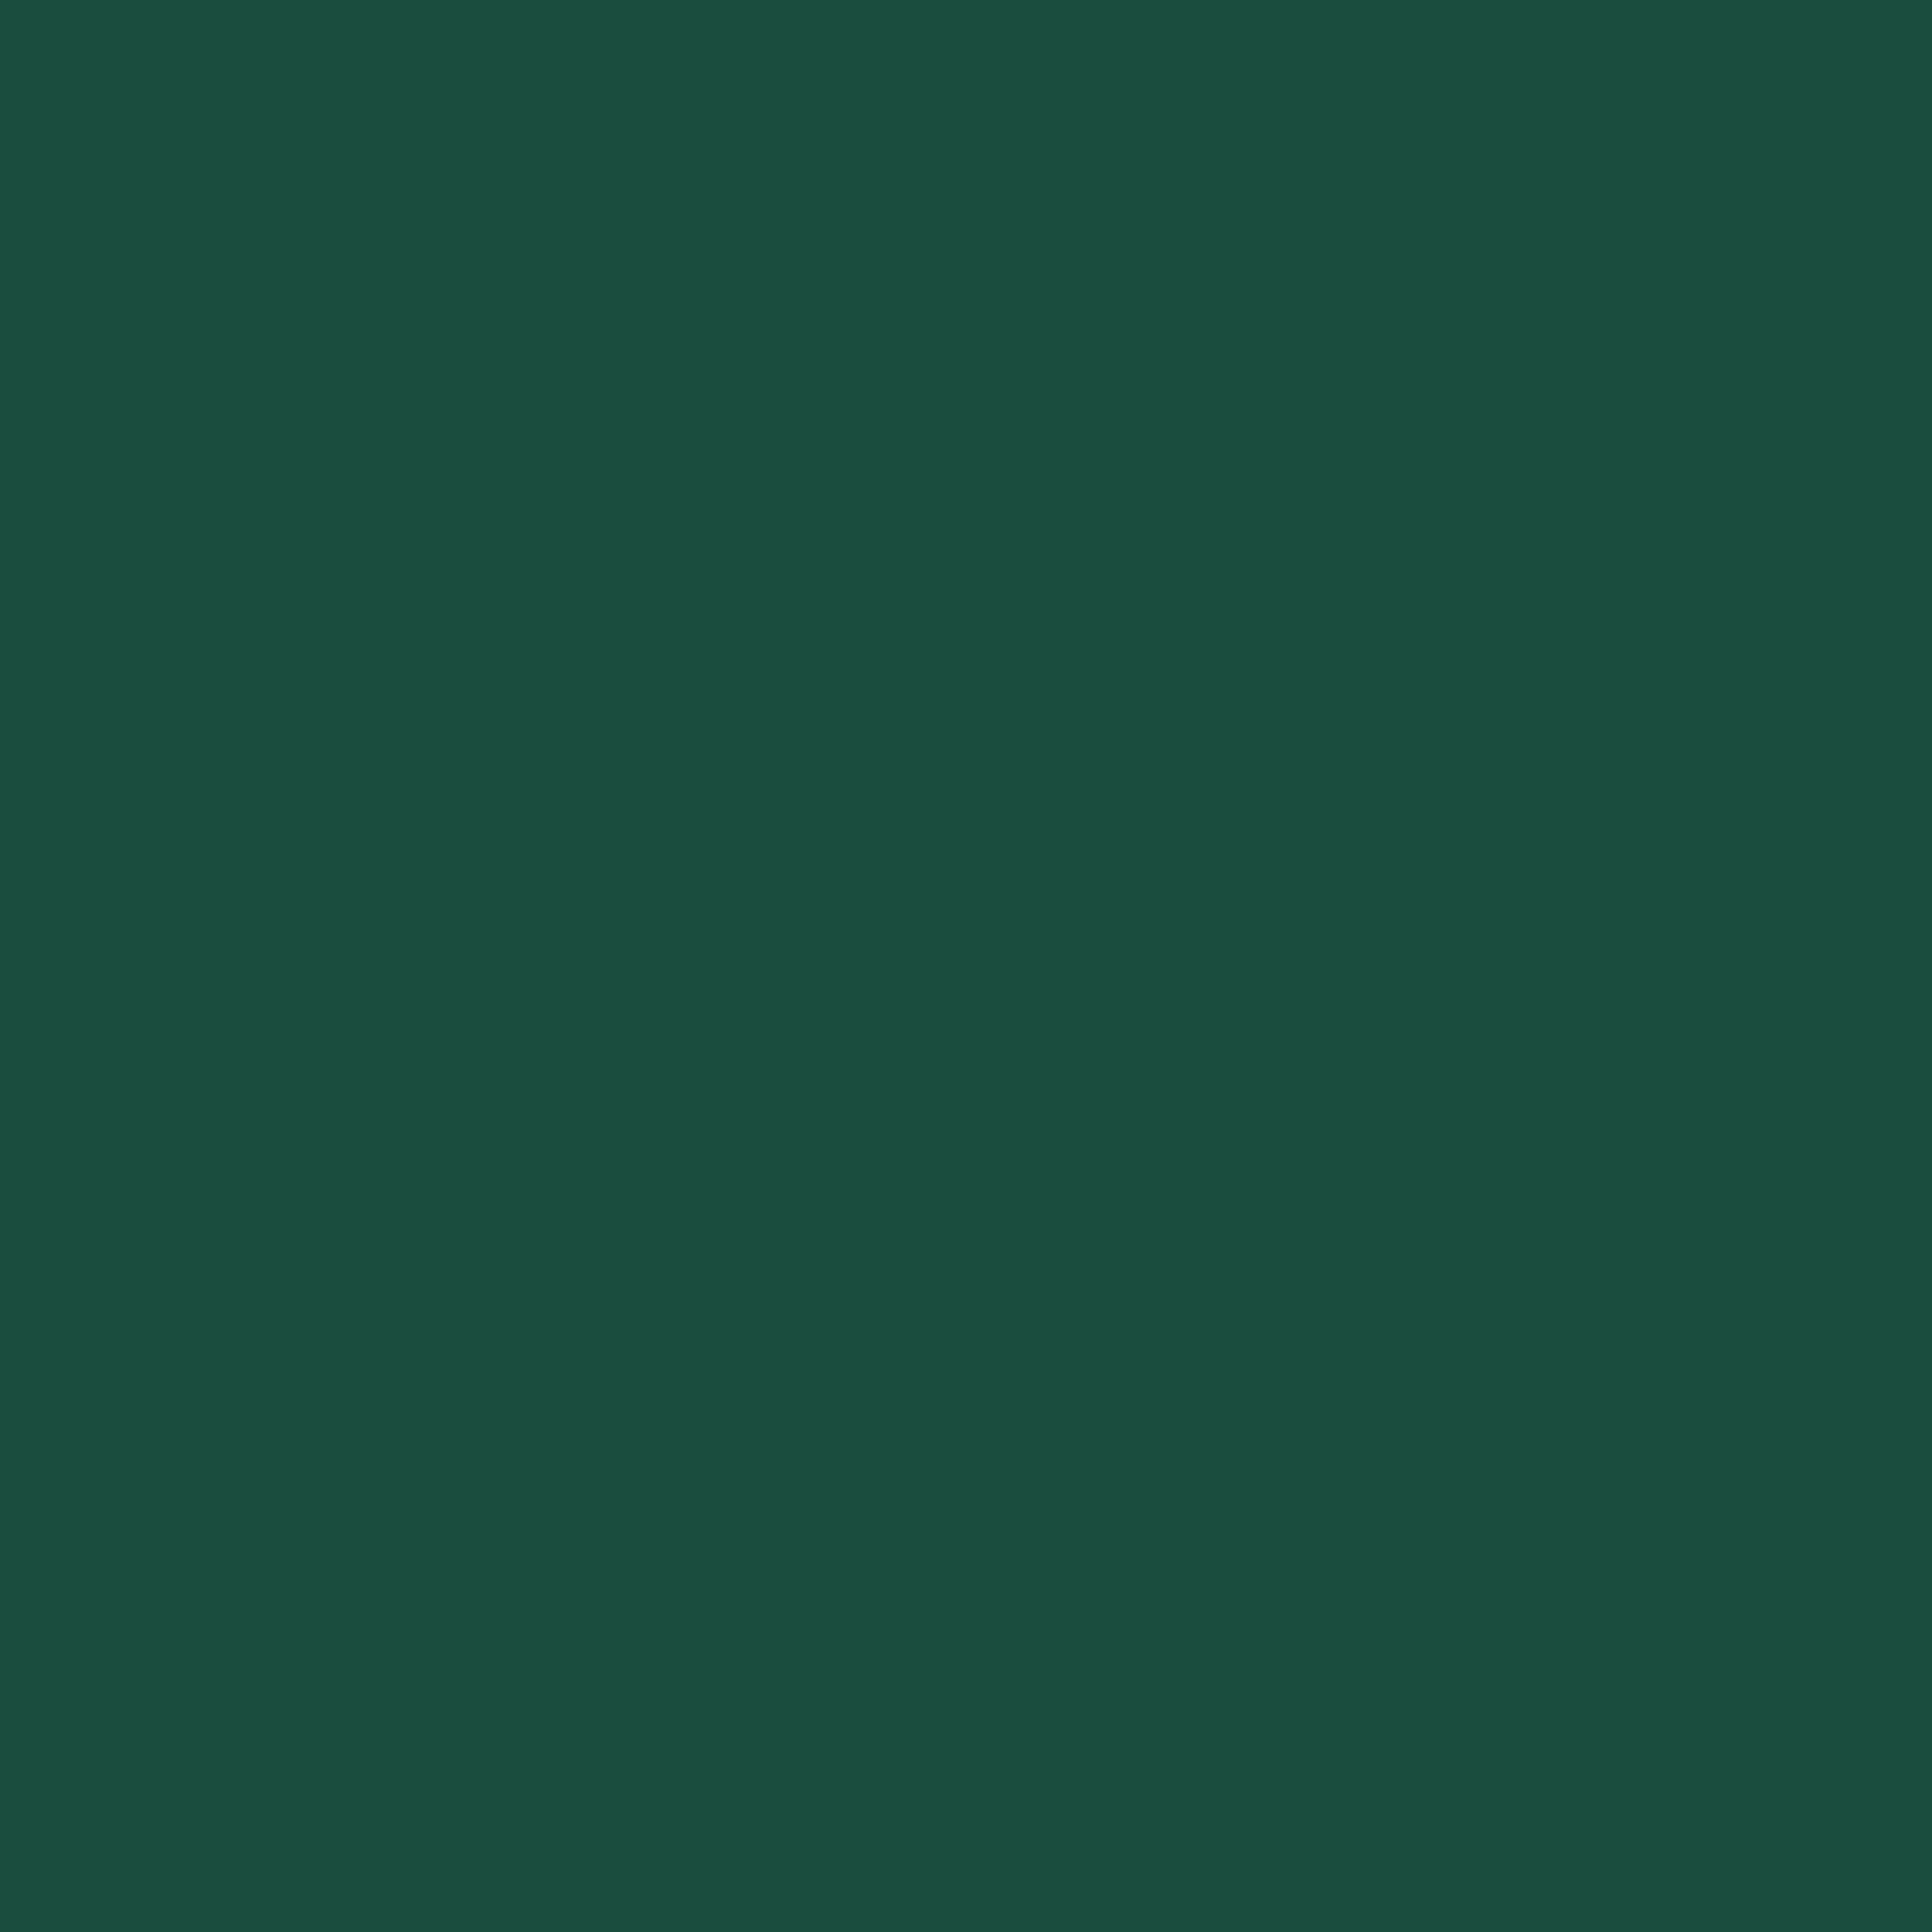 3600x3600 English Green Solid Color Background